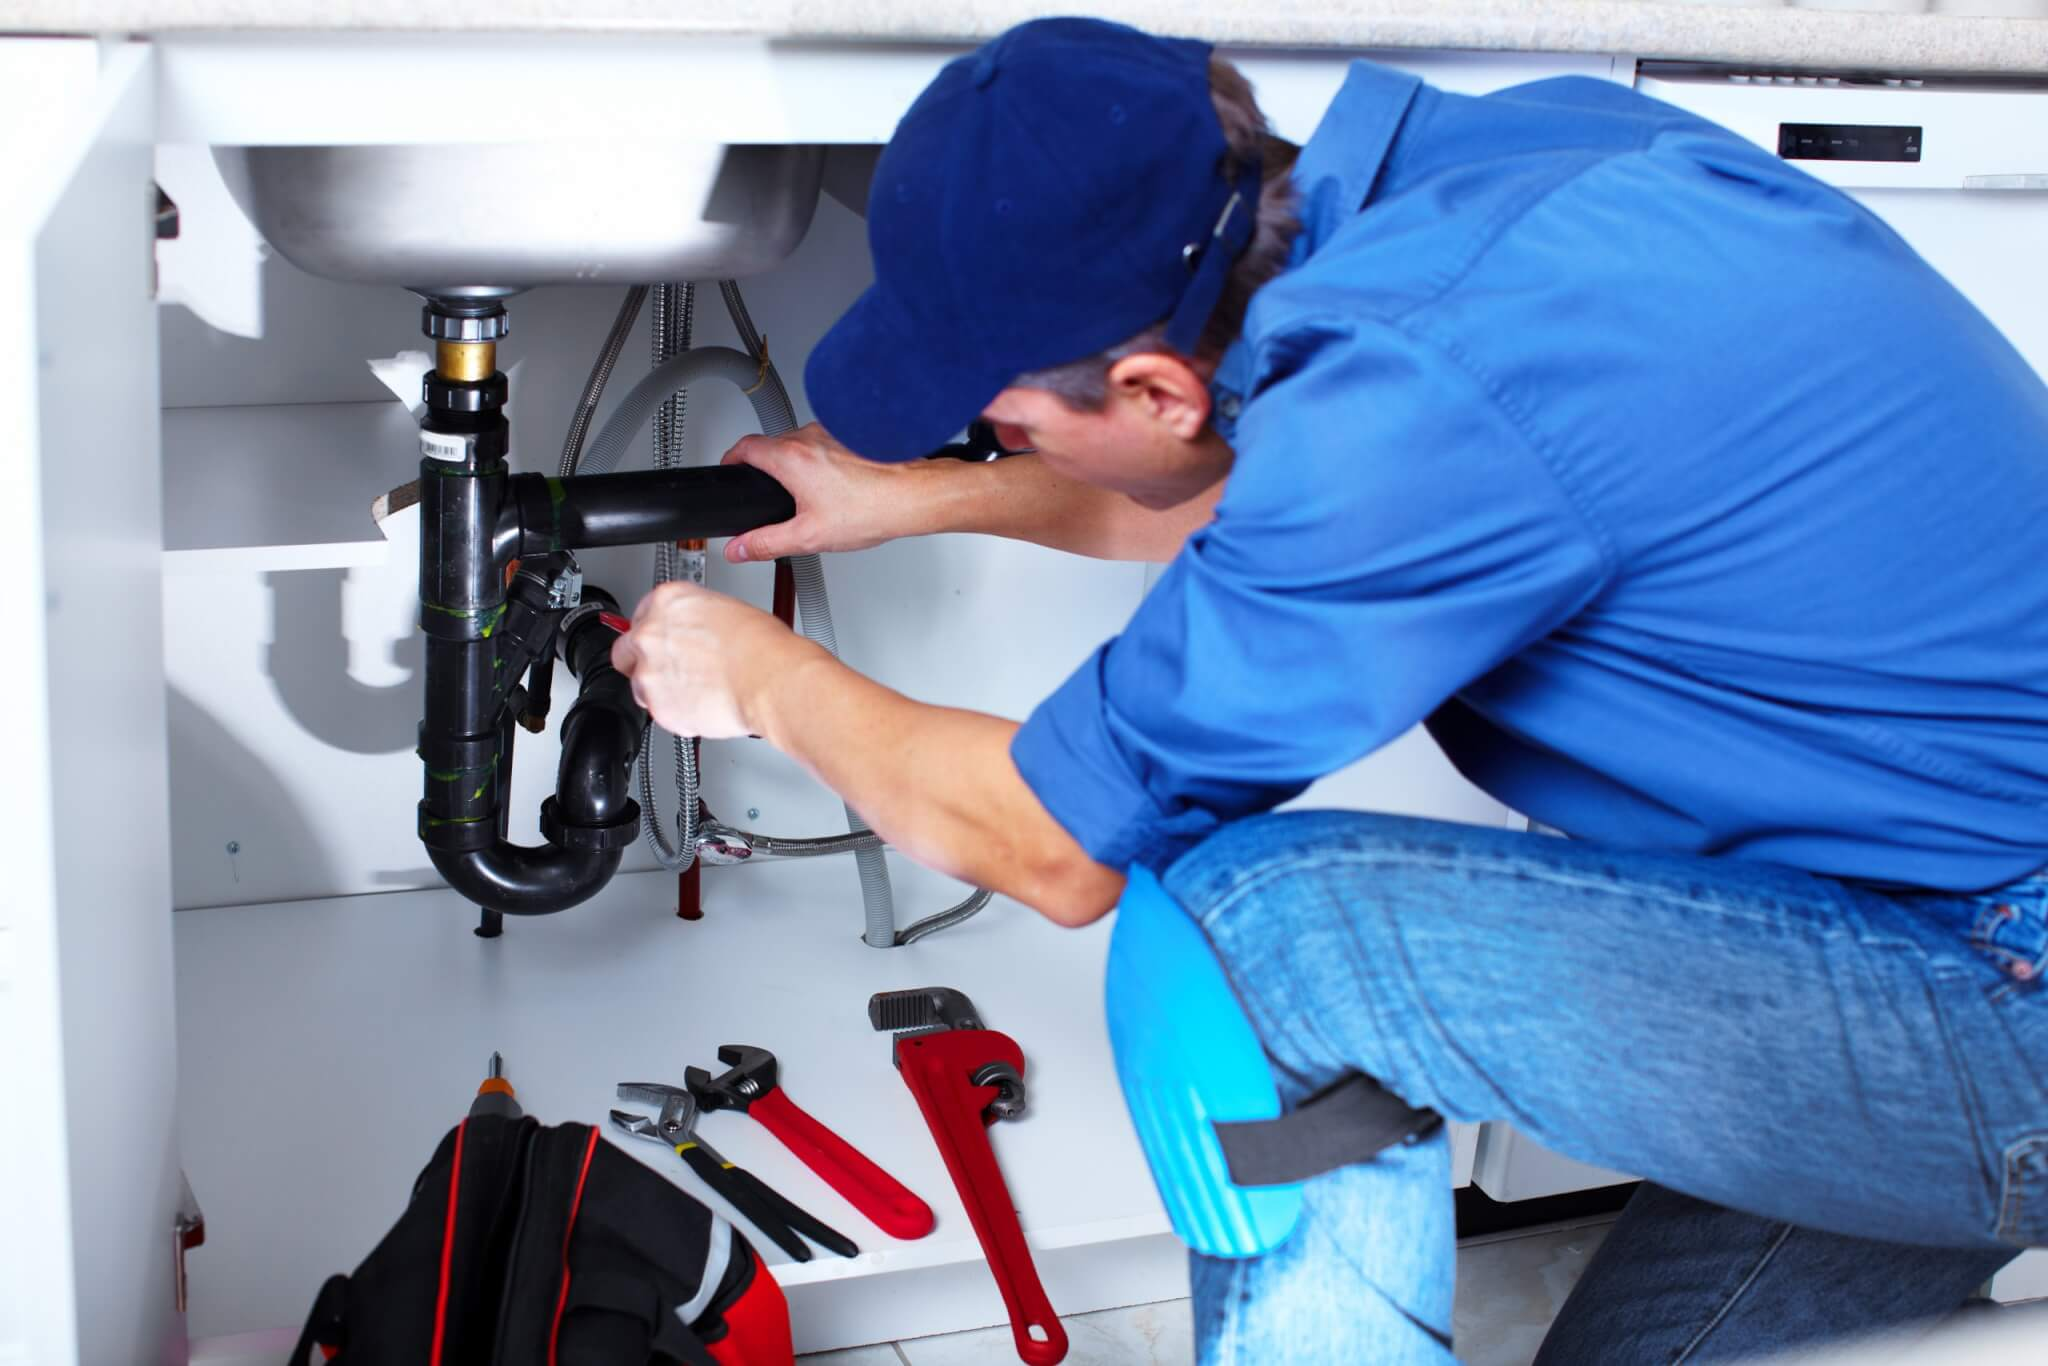 Professional plumber fixing a repair for a home warranty customer